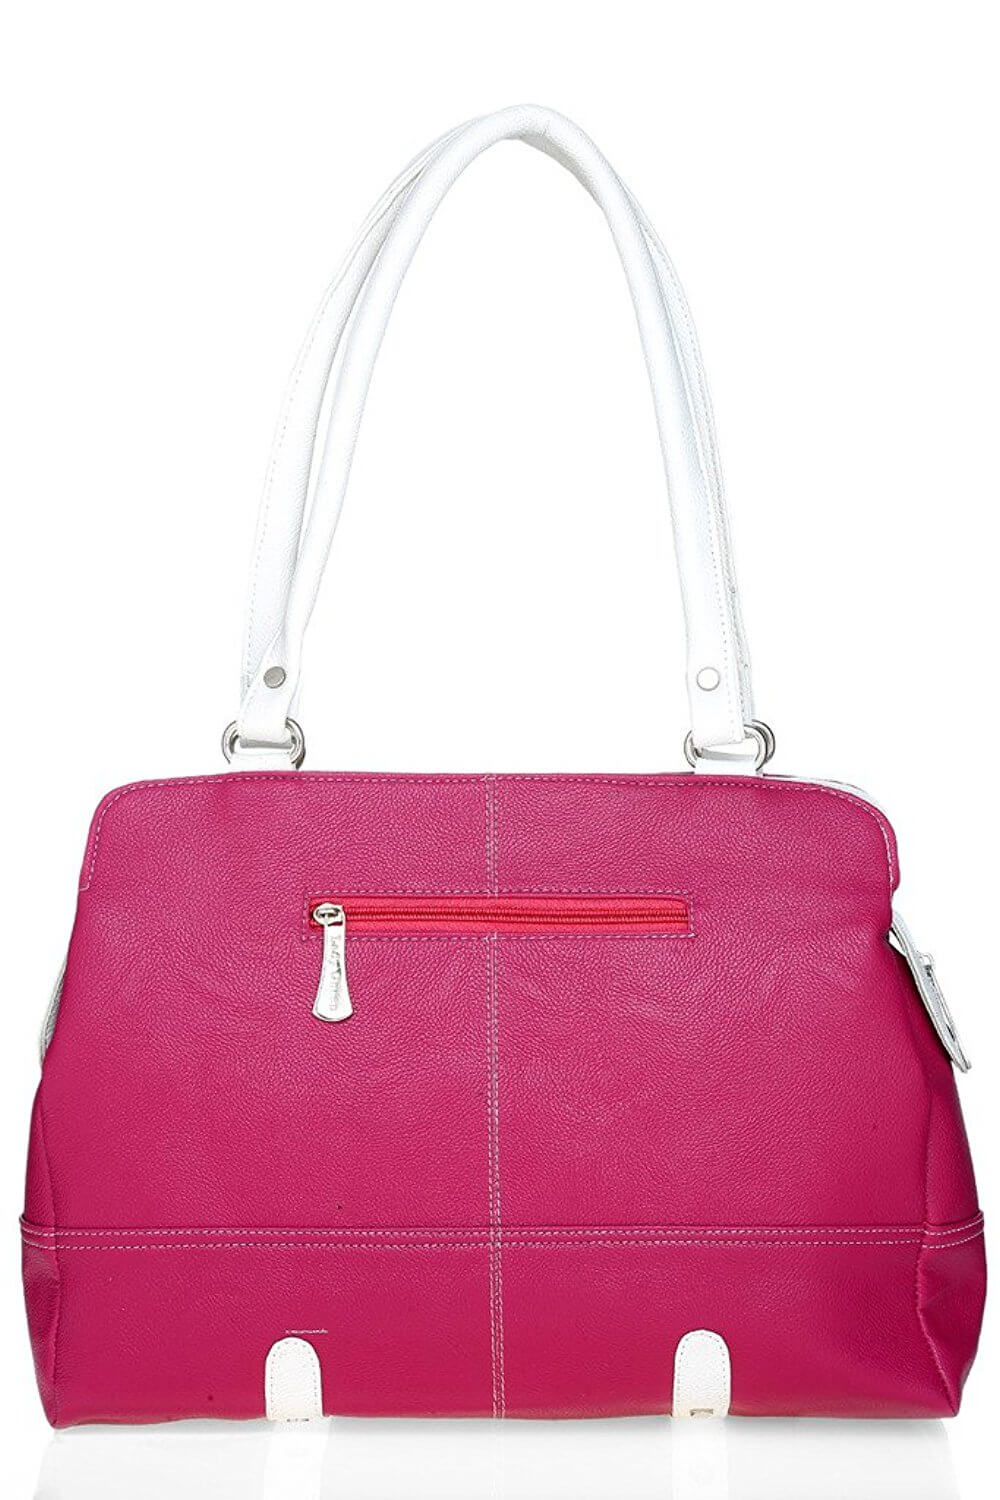 LADY QUEEN Multi Faux Leather Shoulder Bag LD - 386